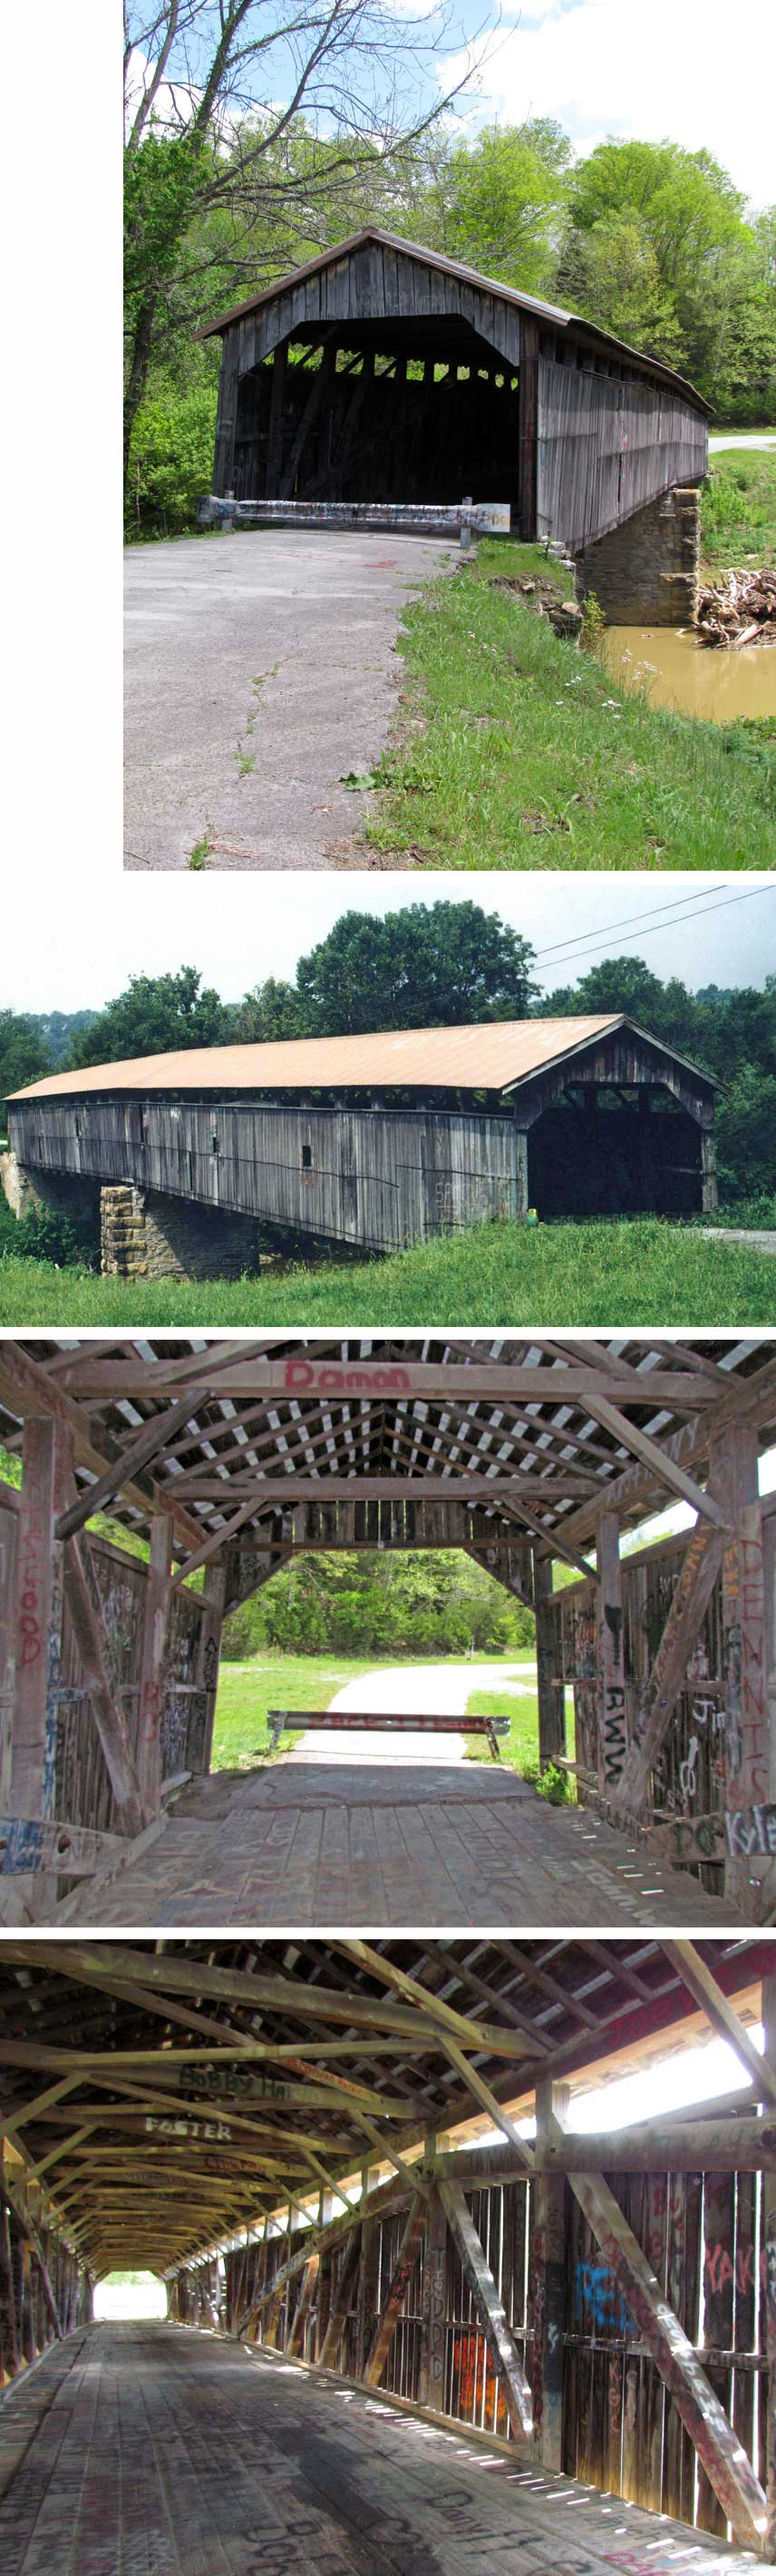 beech fork bridge